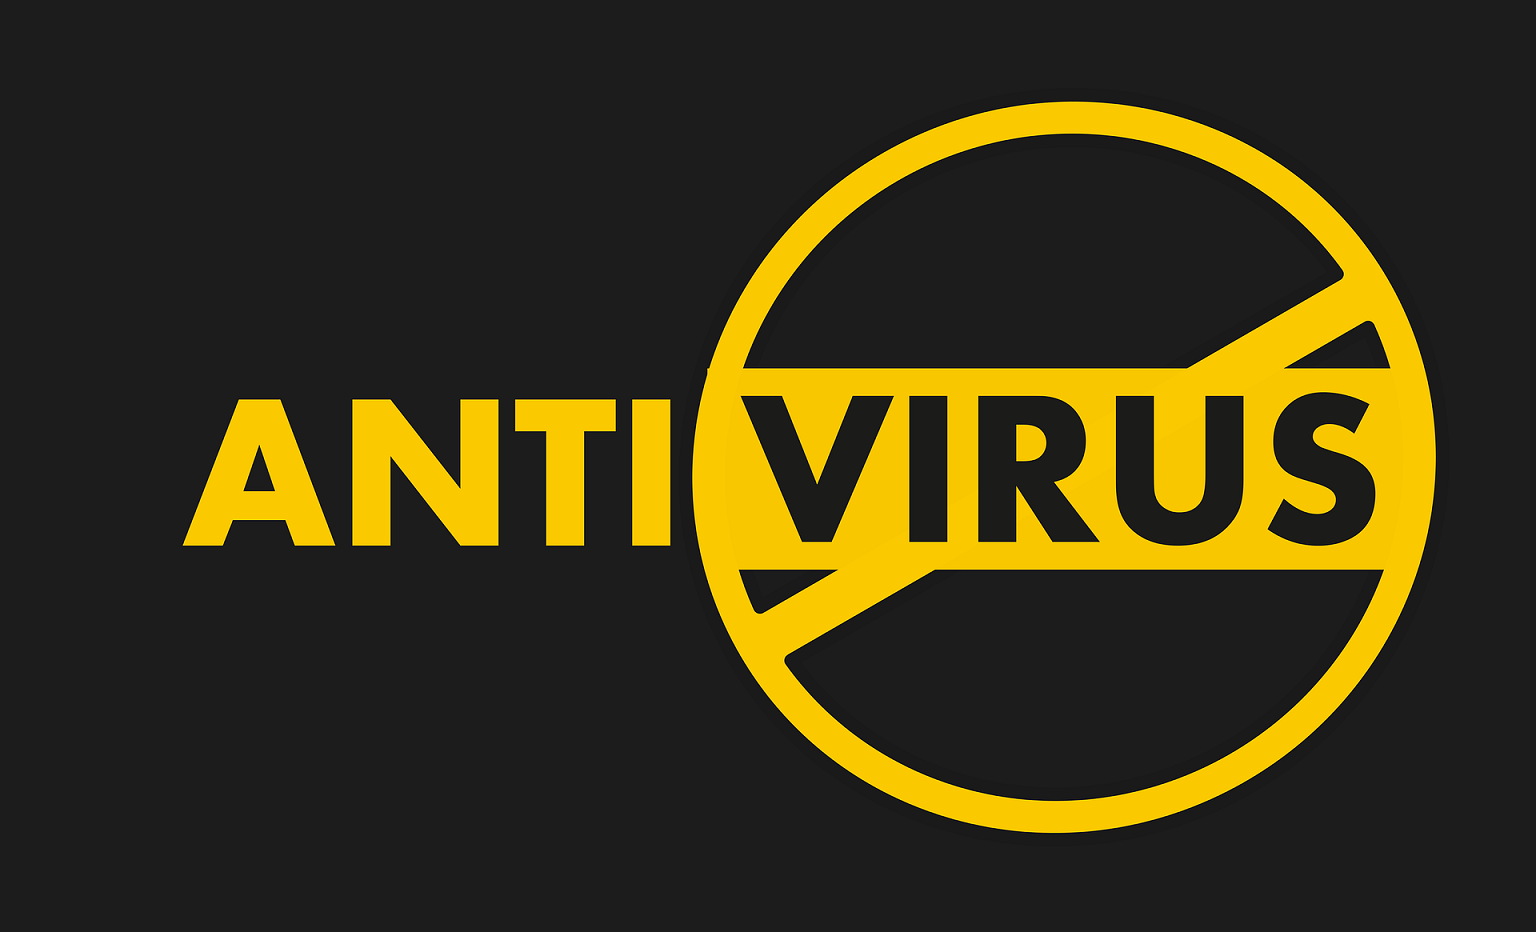 Top FREE Antivirus Software for 2016